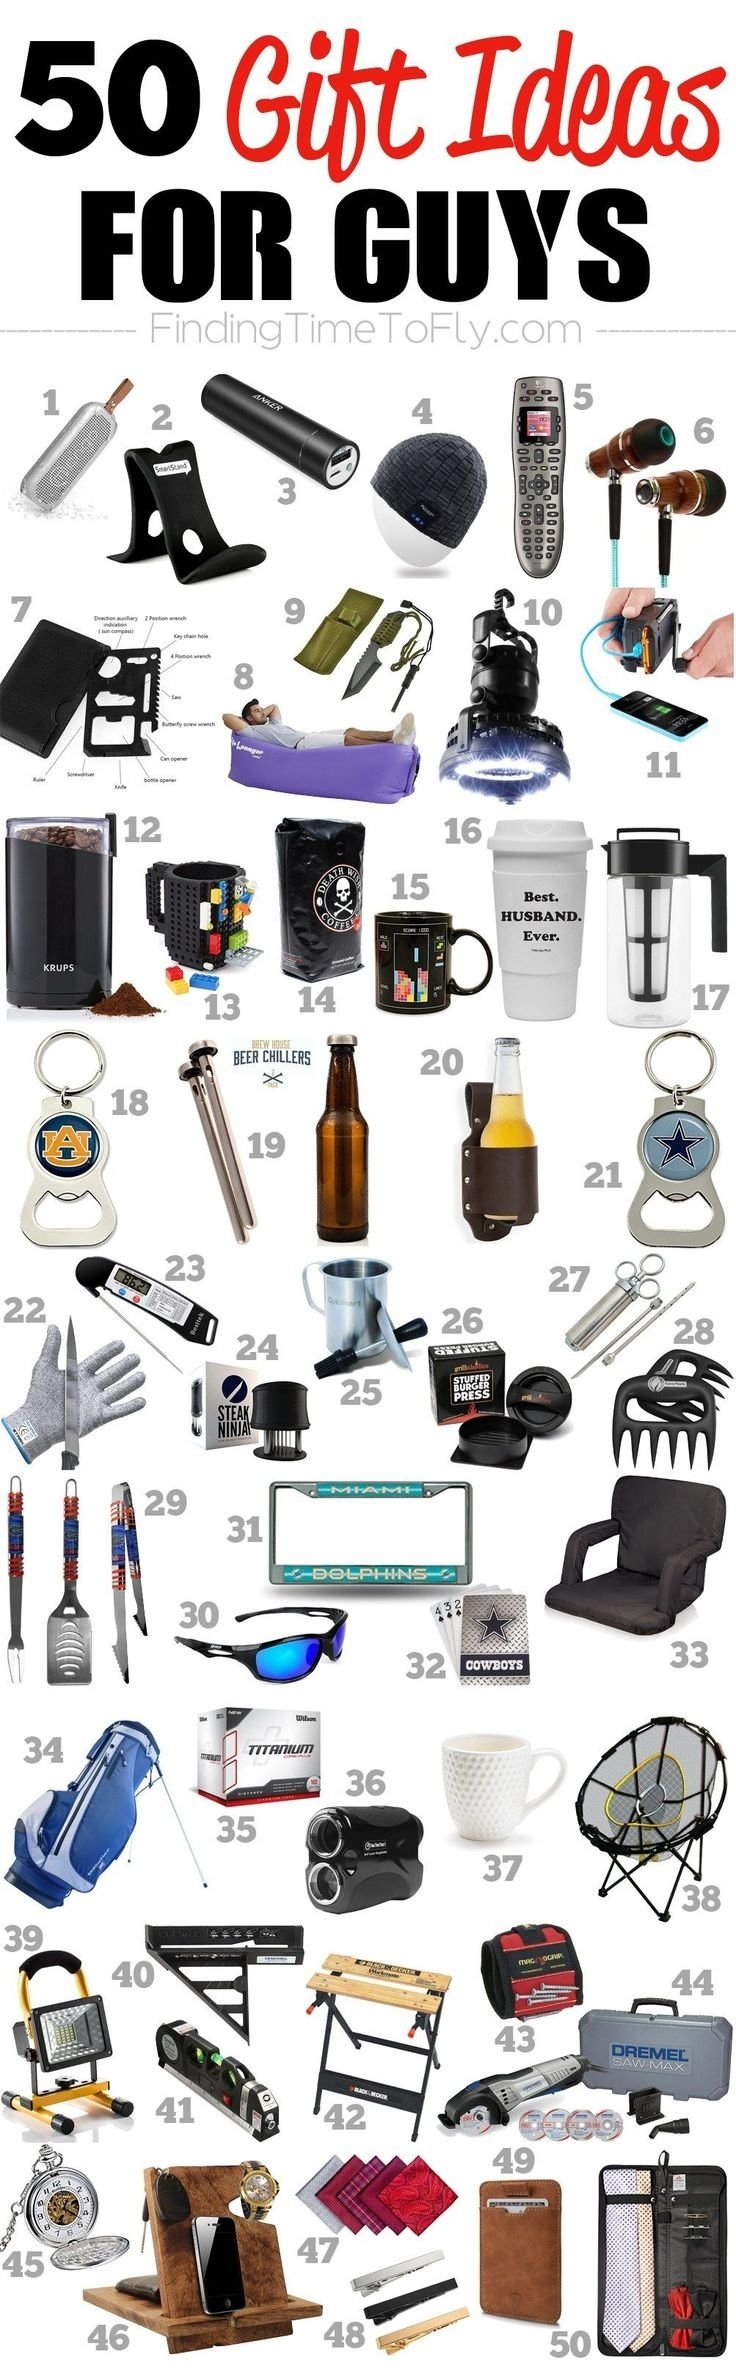 10 Famous Birthday Present Ideas For Guys 178 Best Gifts Him Images Gift